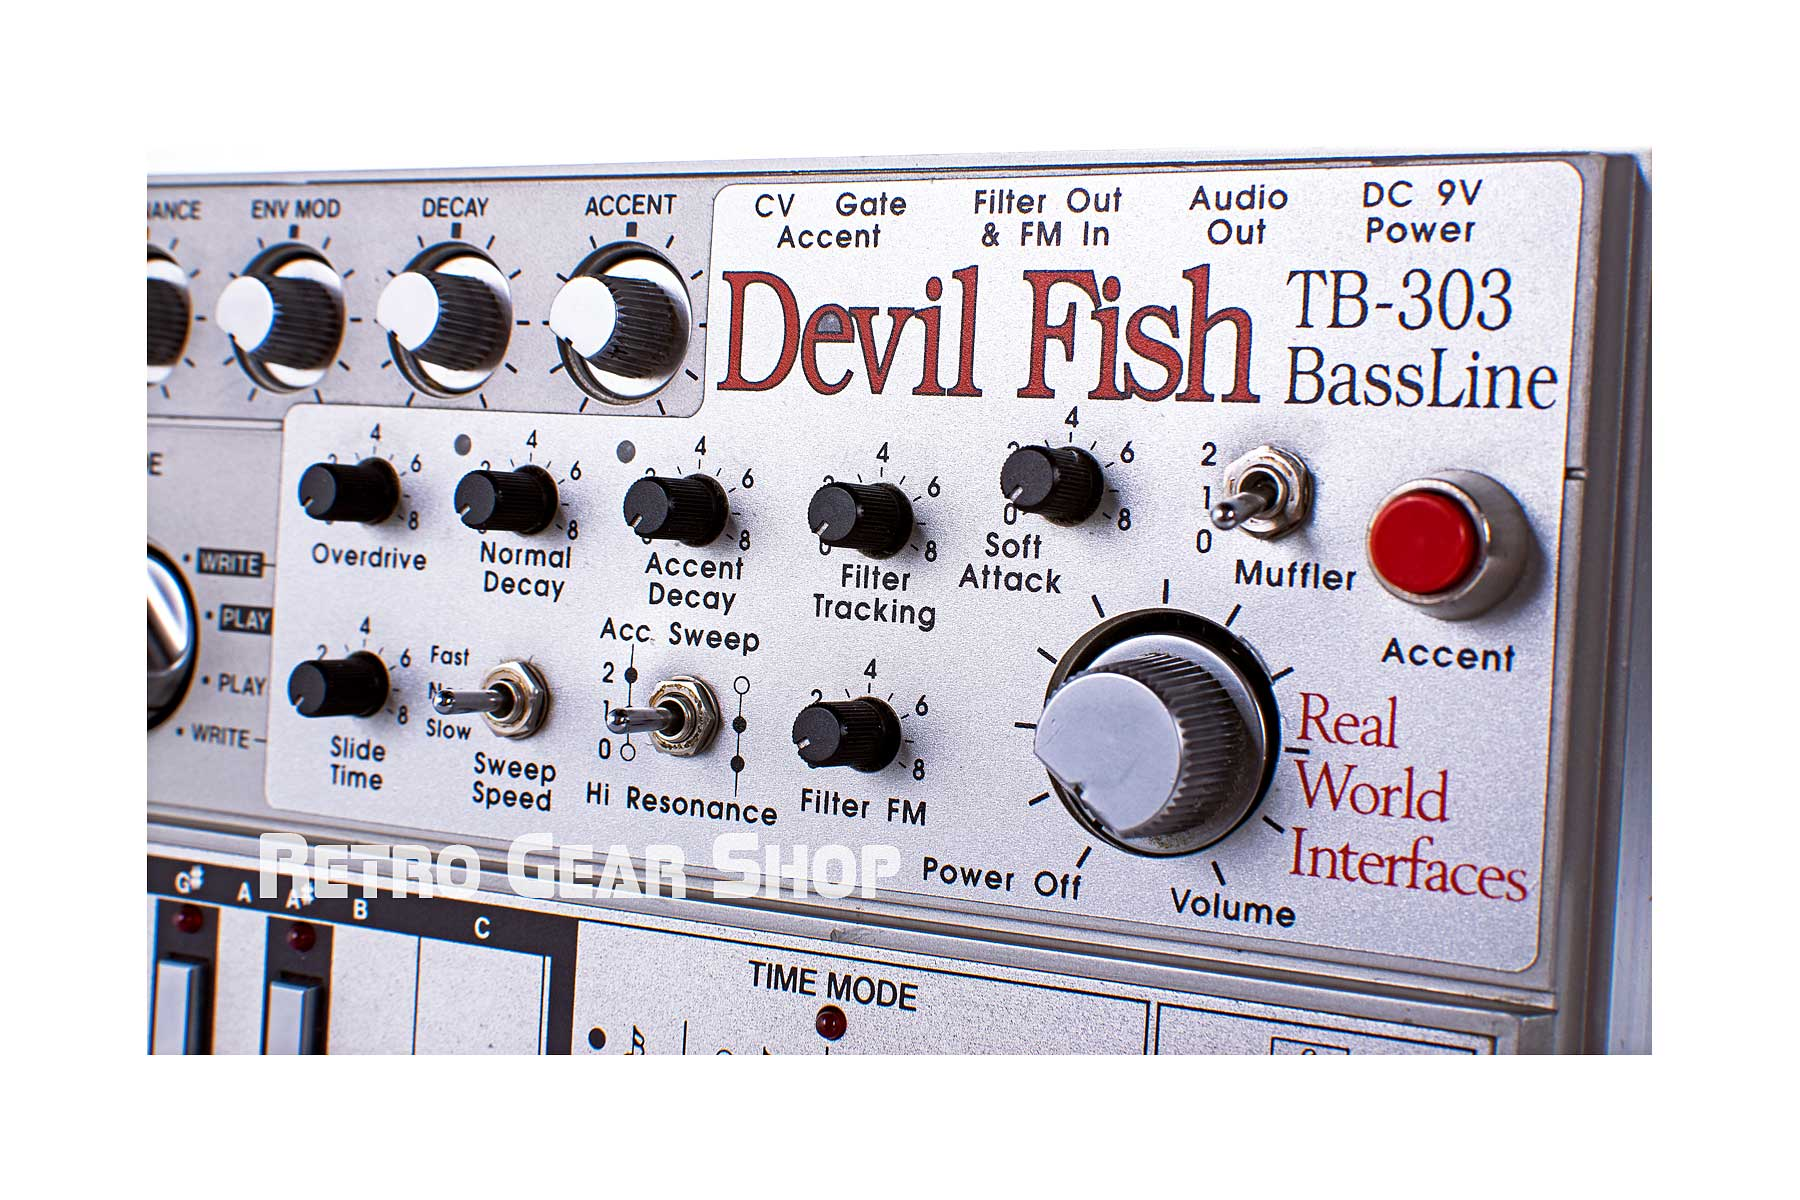 Roland TB-303 Bass Line Devilfish Upgrade Knobs